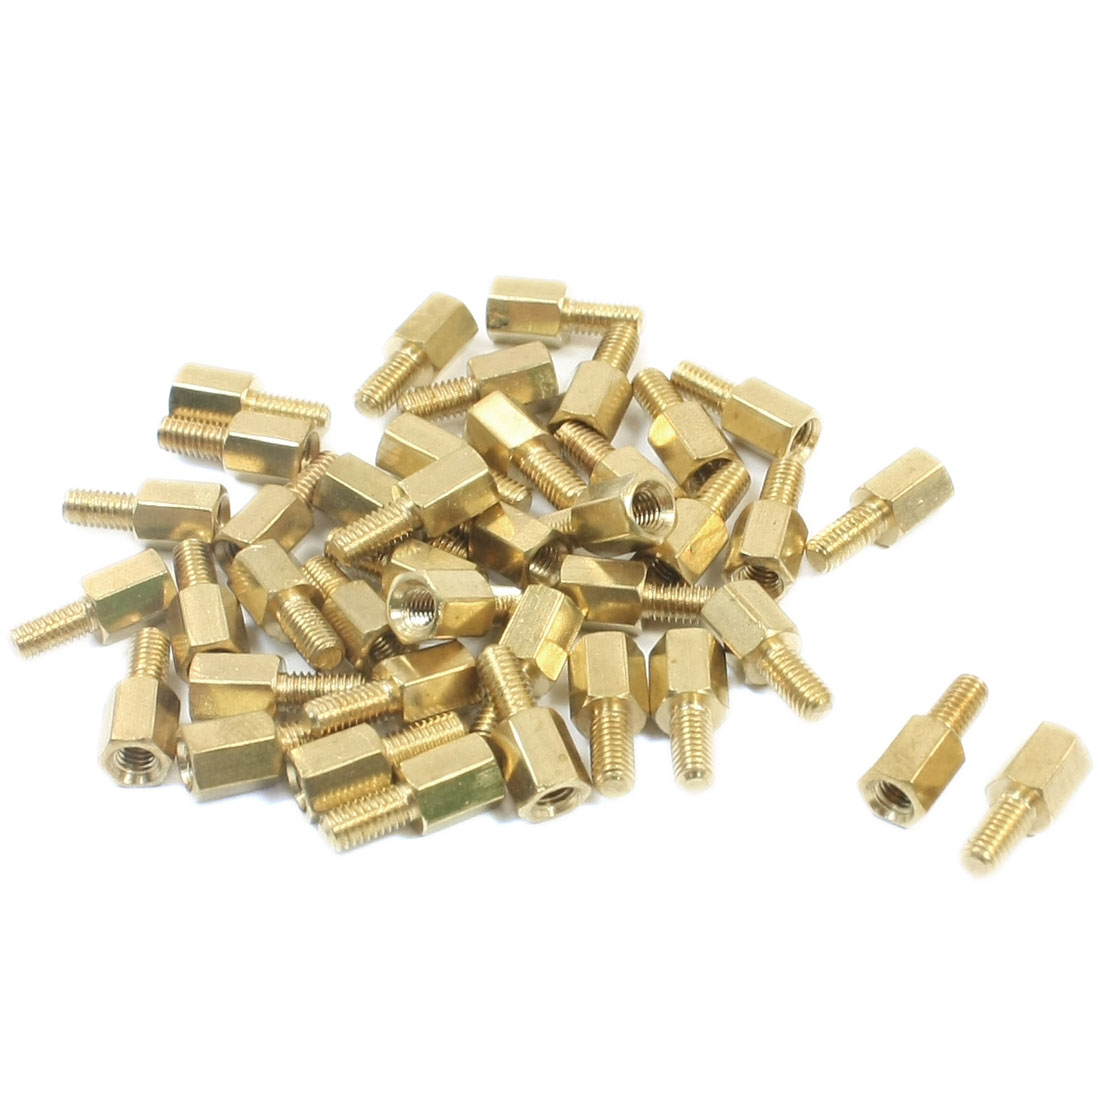 M3 x 6mm x 12mm Gold Tone Male Female Thread Brass Pillar PCB Hexagon Standoff Spacer 40Pcs